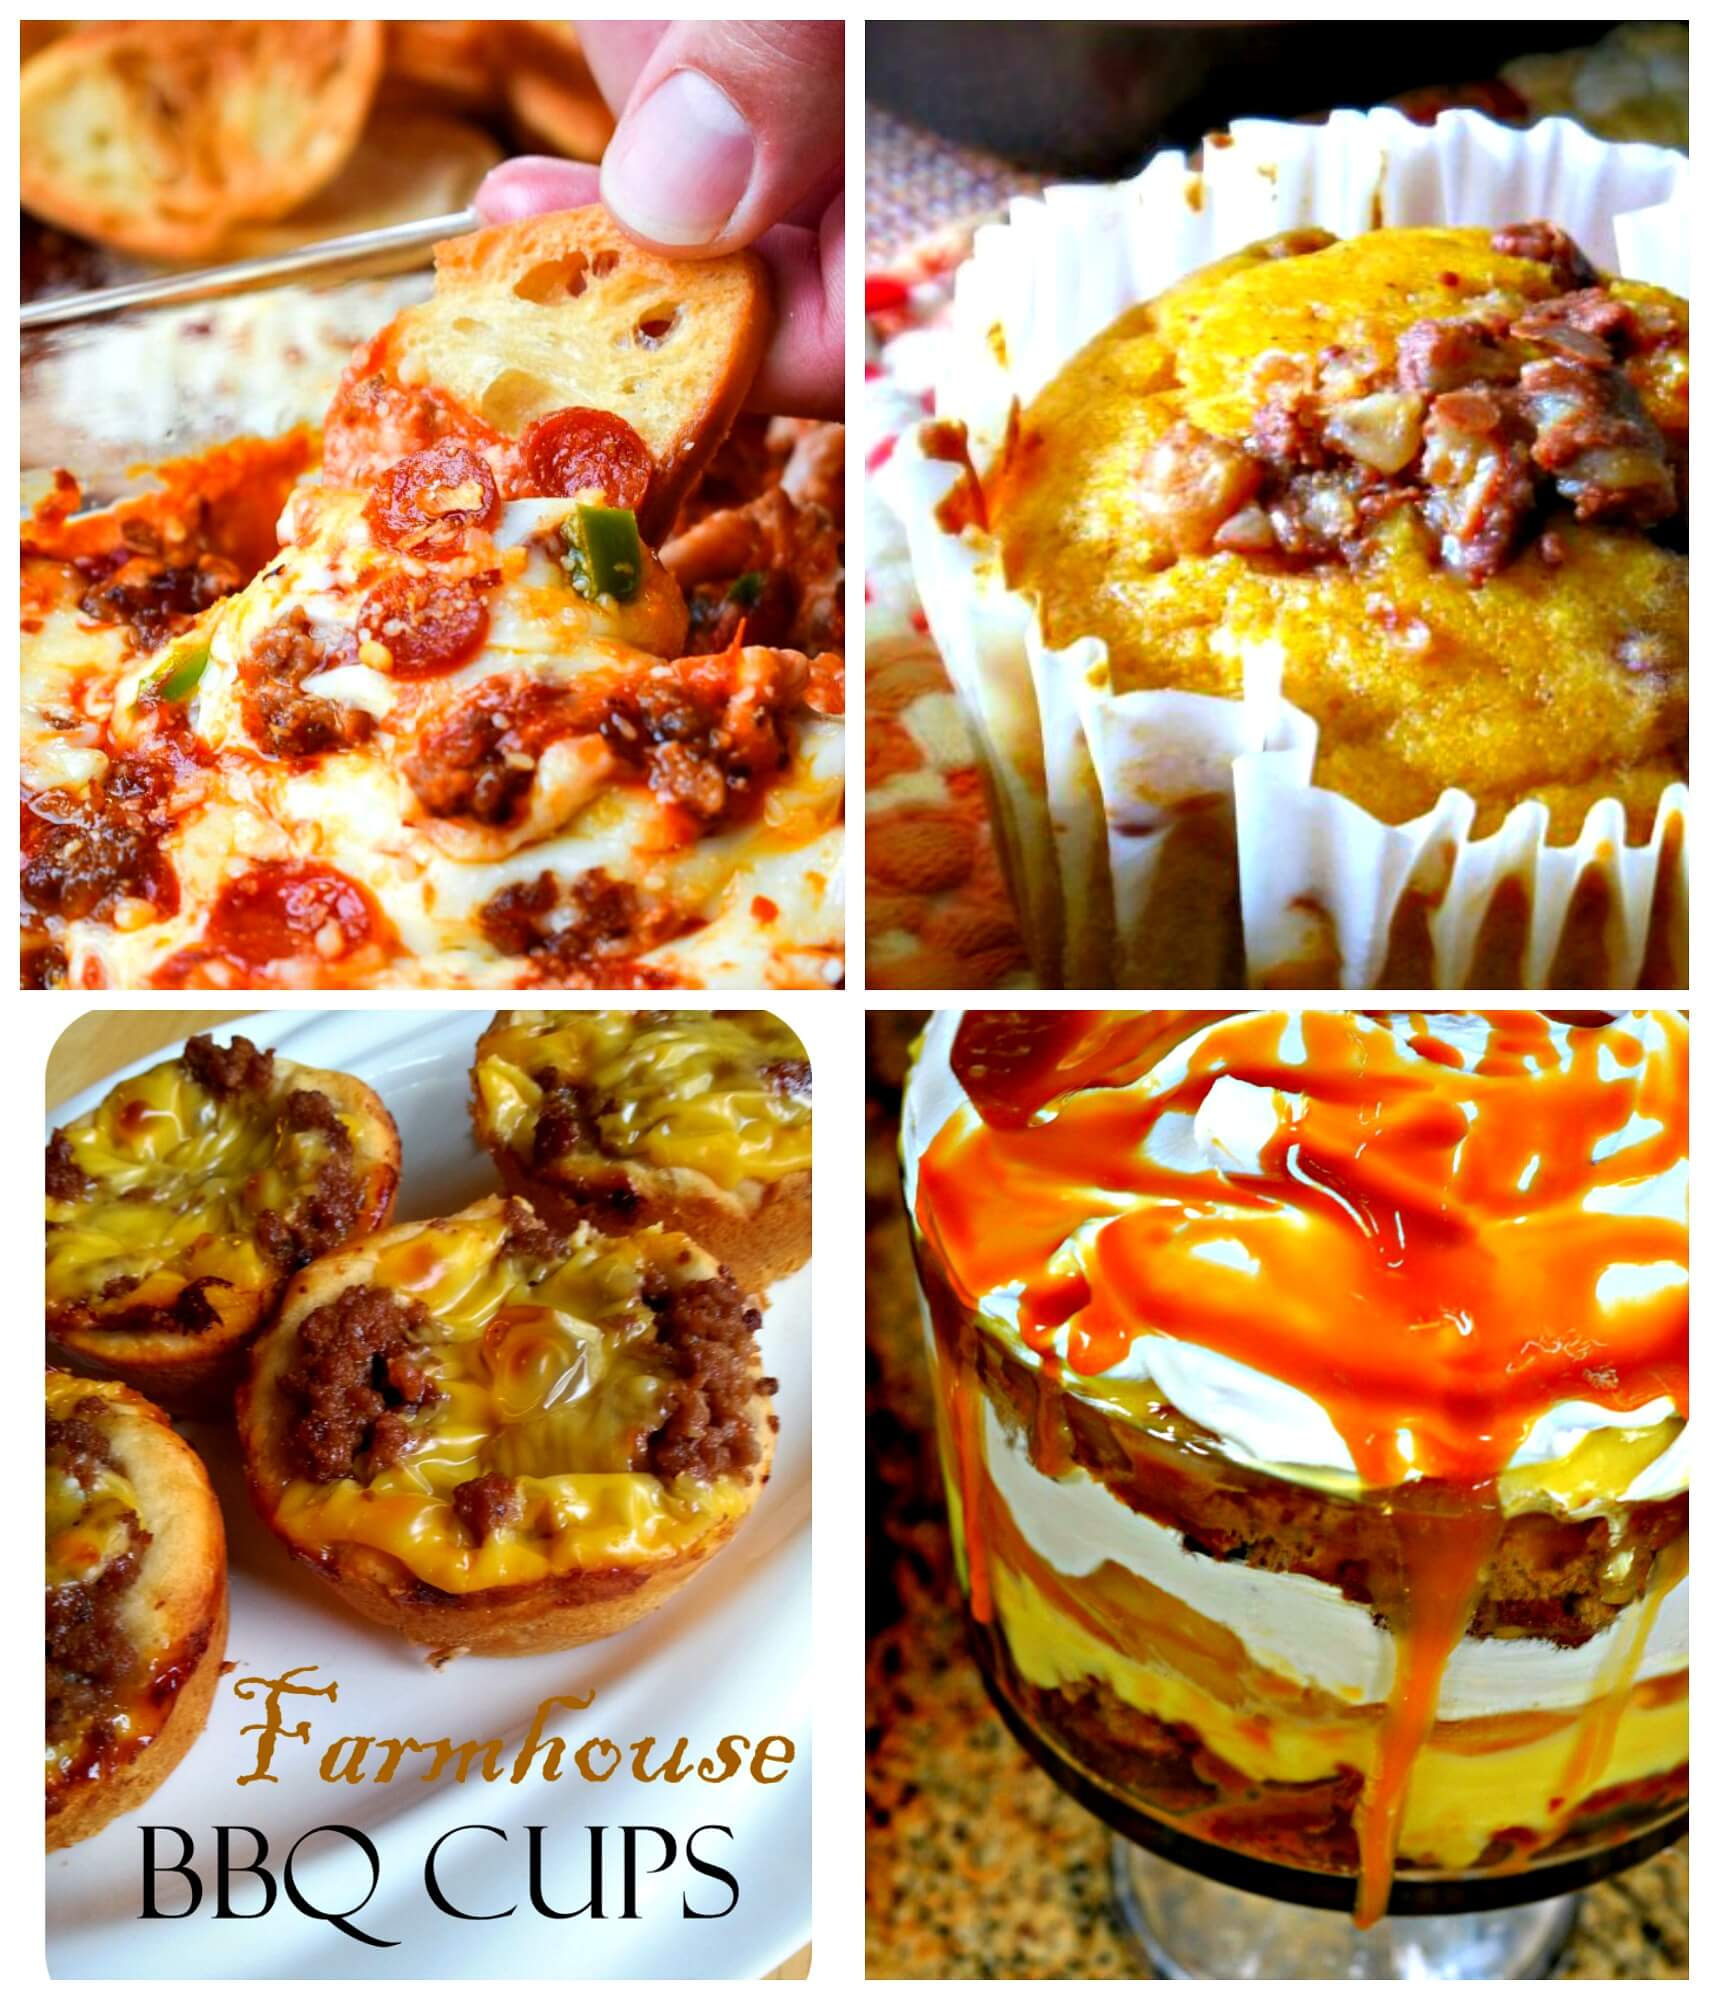 Meal Plan Monday 182 Hot Pizza Dip, Caramel Apple Trifle, Pumpkin Muffins, Farmhouse BBQ Cups